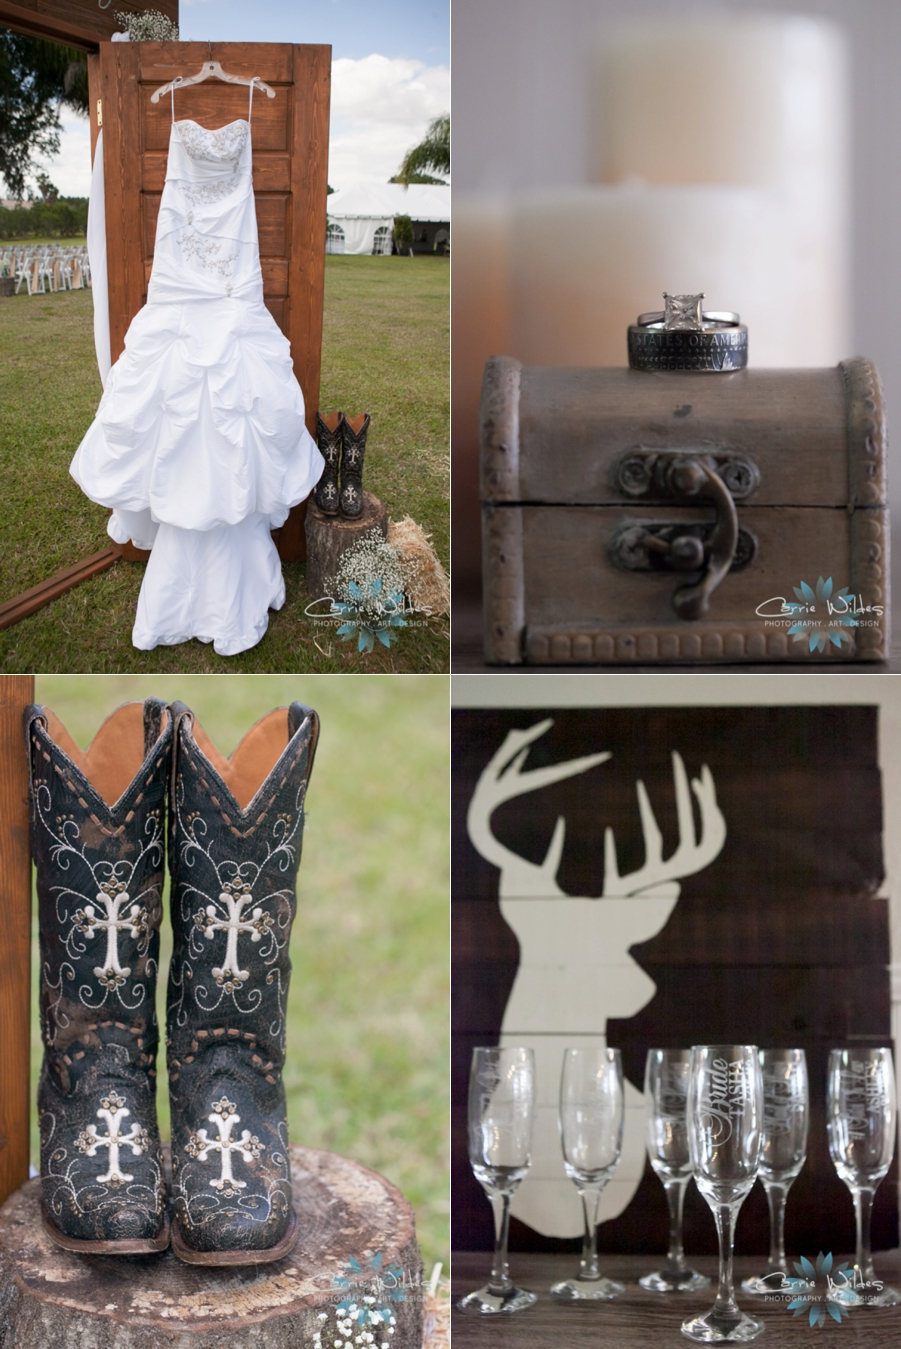 4_16_16 Plant City Rustic Chic Wedding_0001.jpg